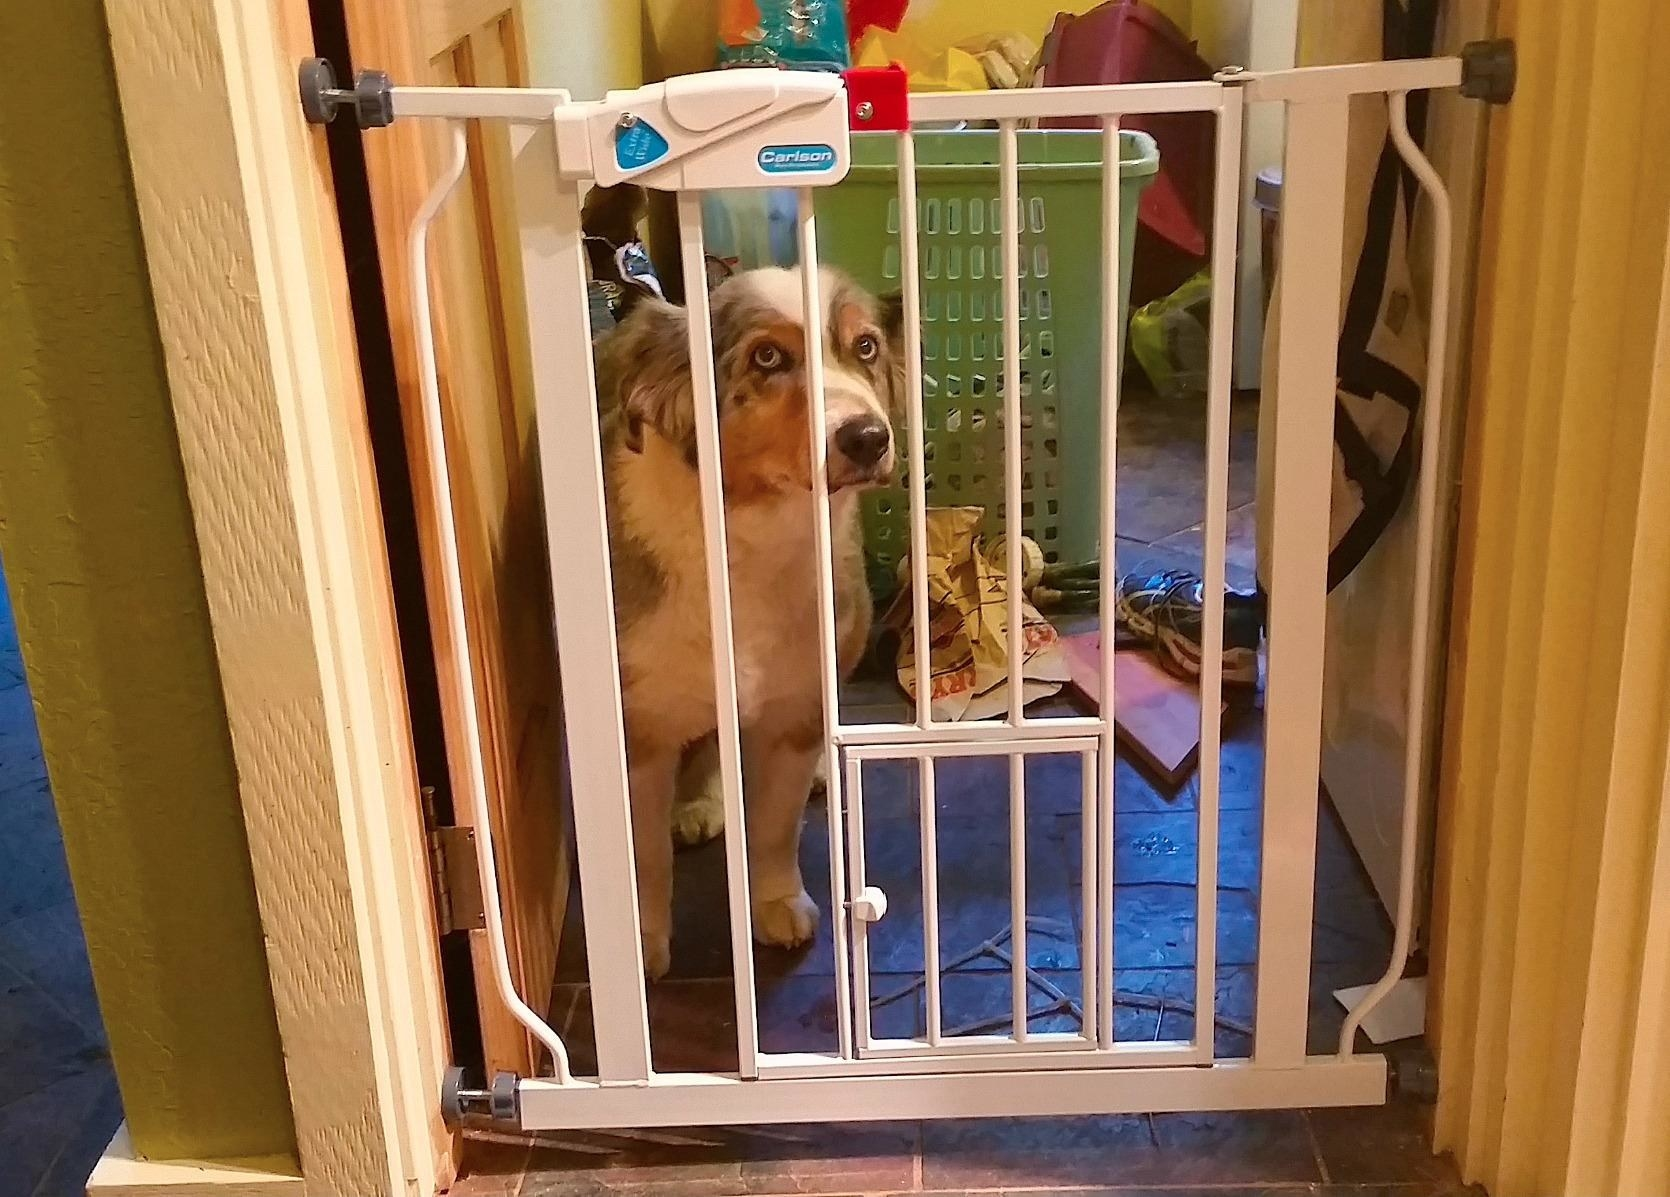 Reviewer photo of their large dog sitting behind the gate